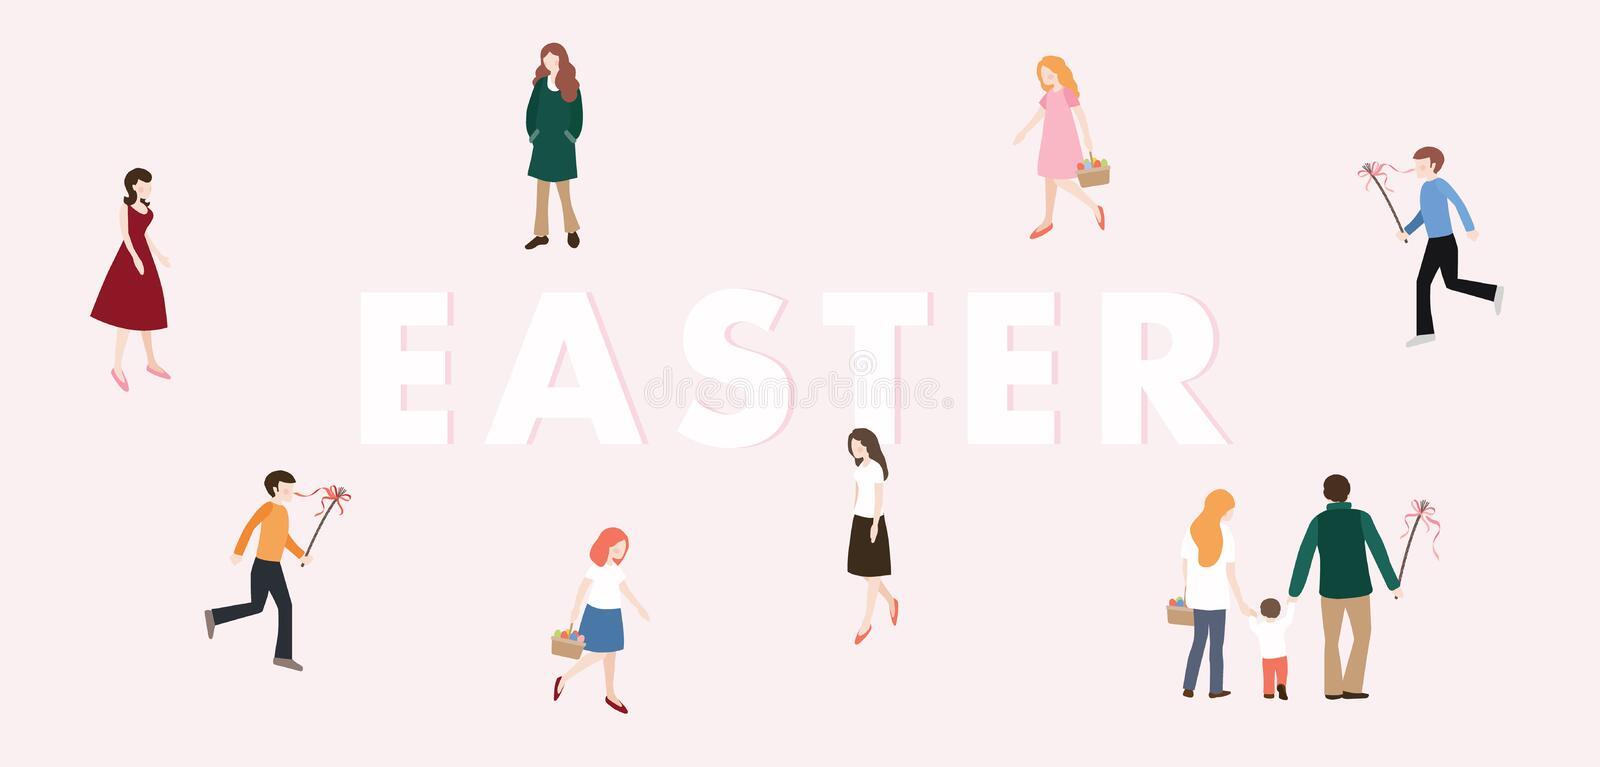 Modern Easter web banner. Boys with whip chasing the girls with colorful Easter eggs. Family, people walking. European vector illustration